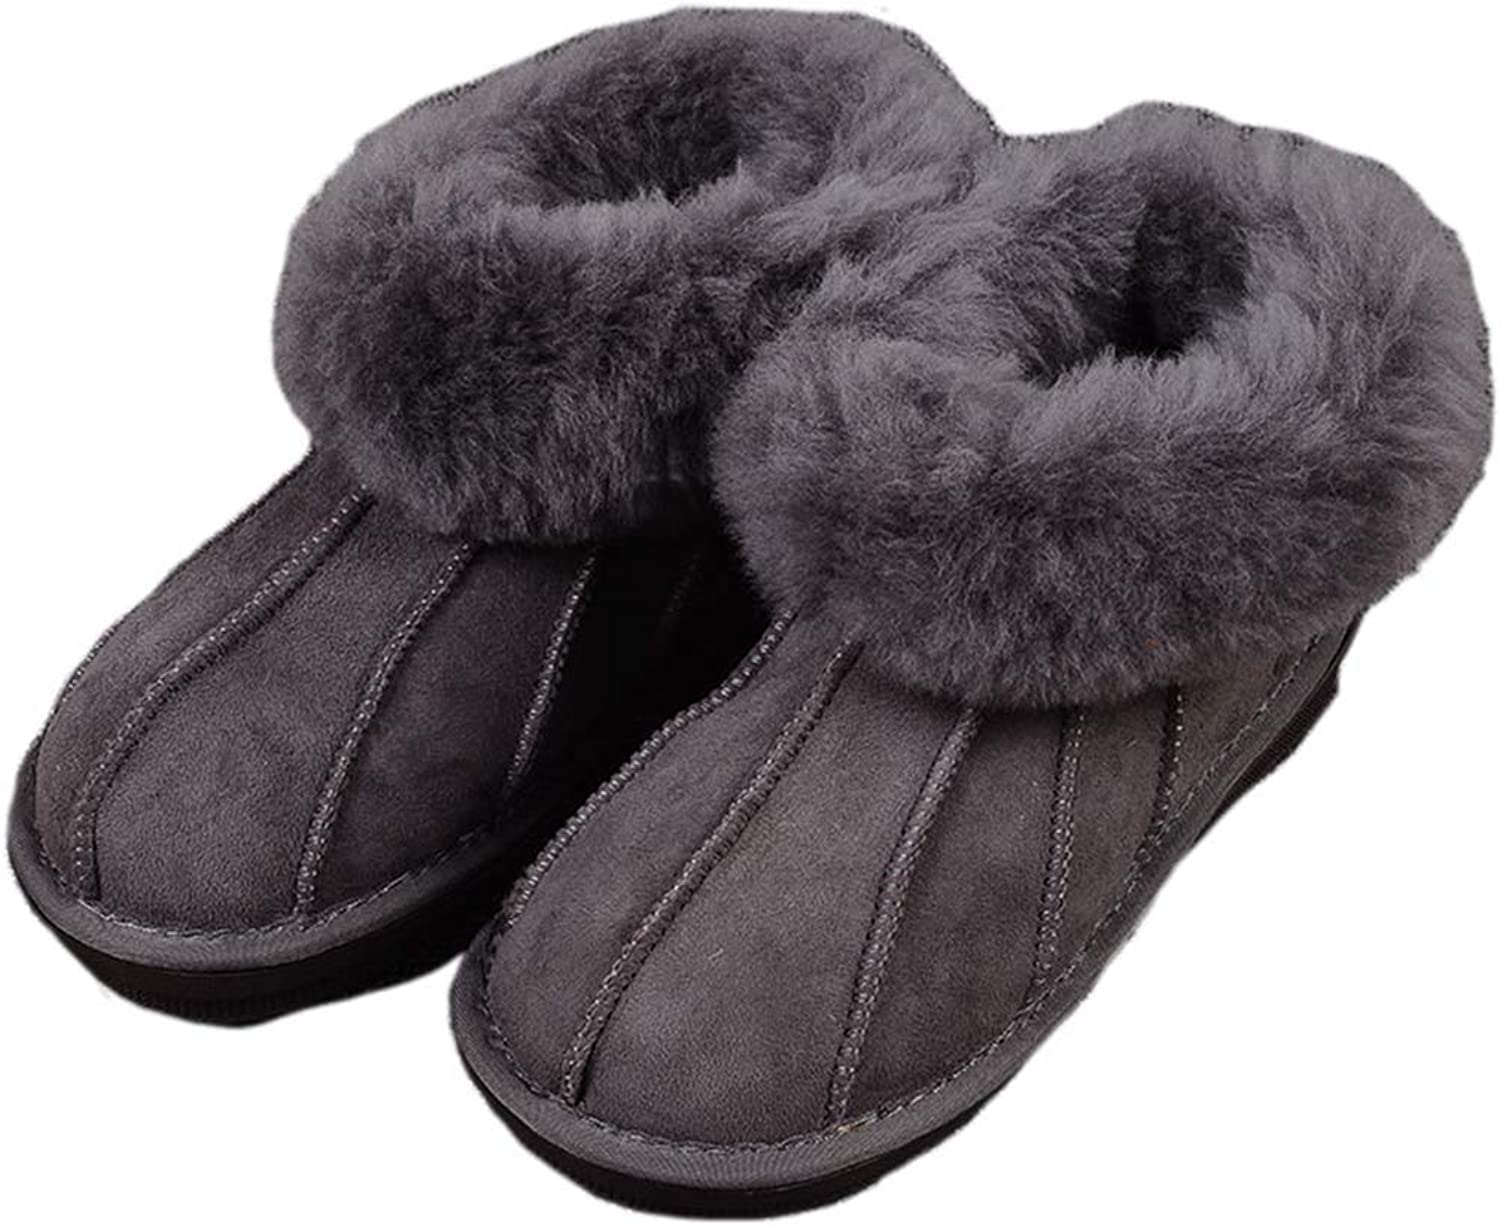 Nafanio Wool Winter Slippers Home Package with Comfortable Men and Women Couple Fur Large Size Mother Pregnant Boots shoes